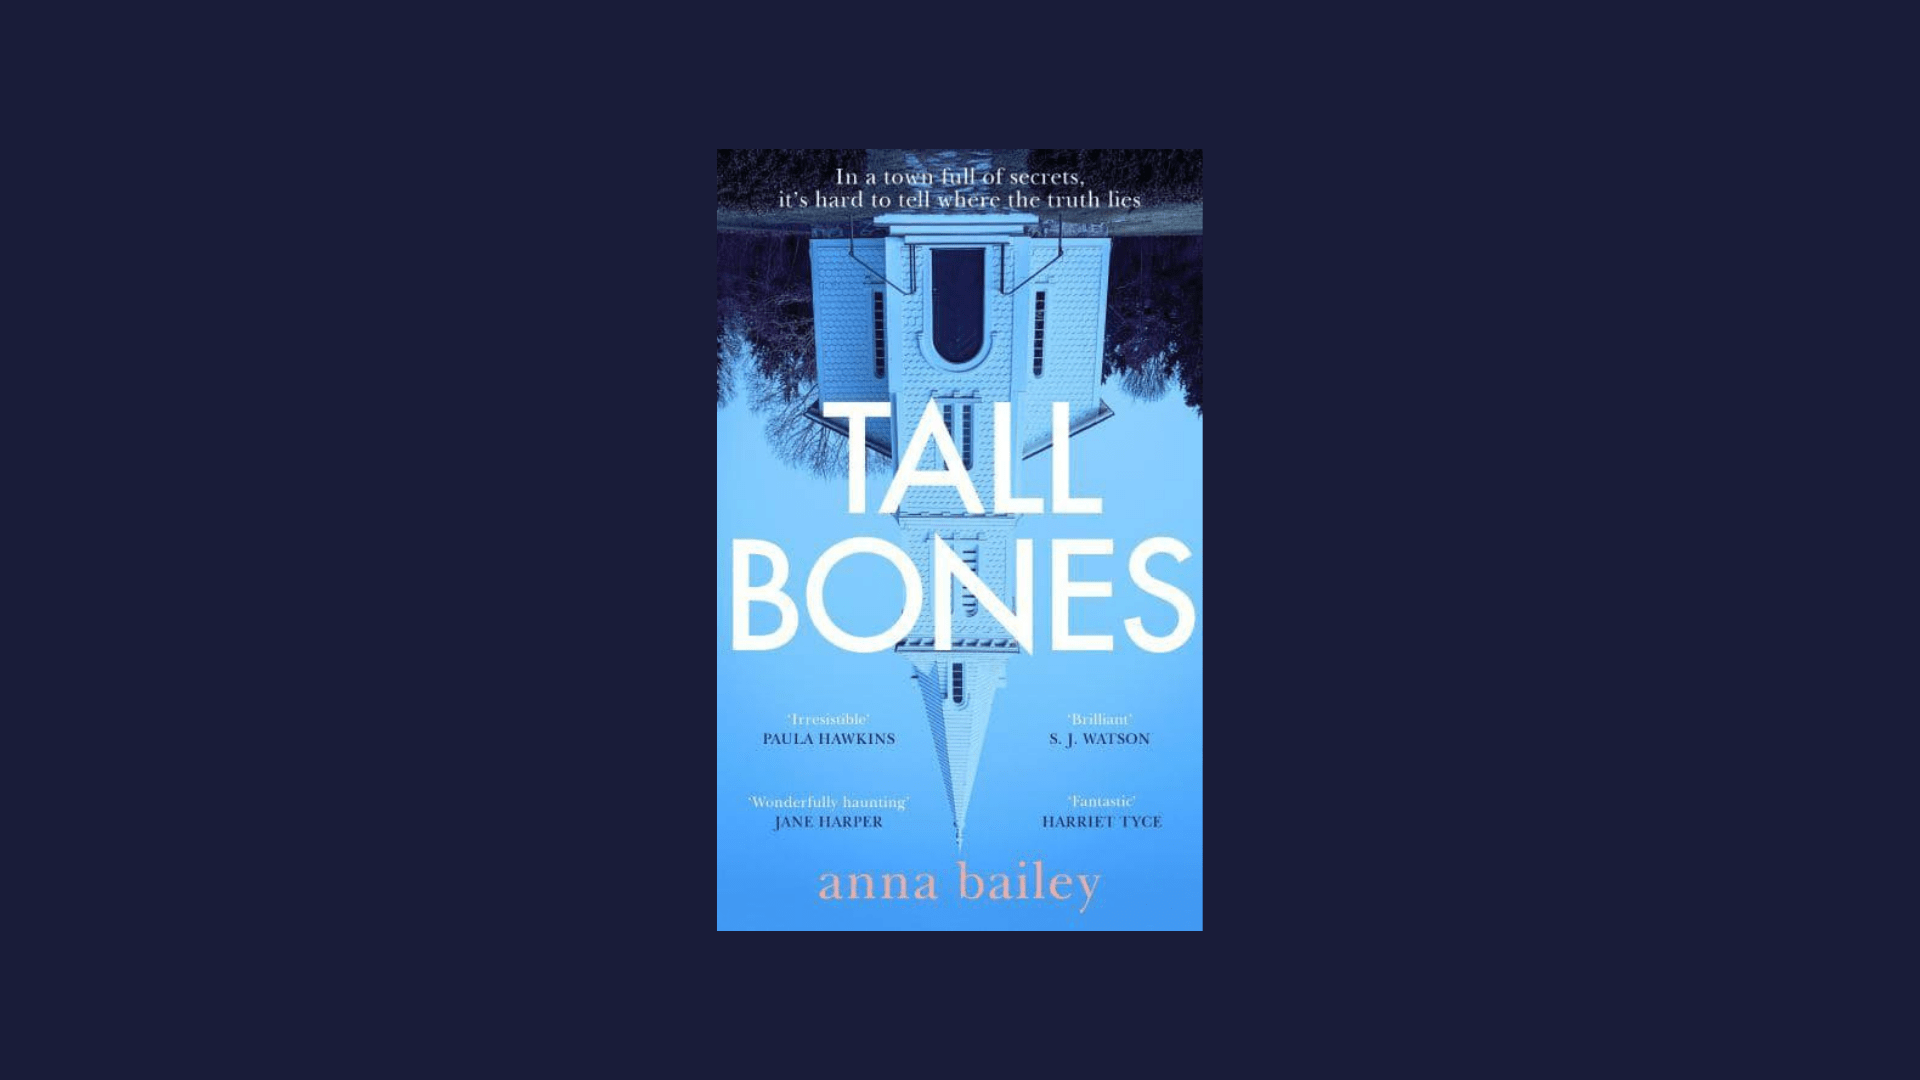 The cover of Tall Bones by Anna Bailey against a dark blue background